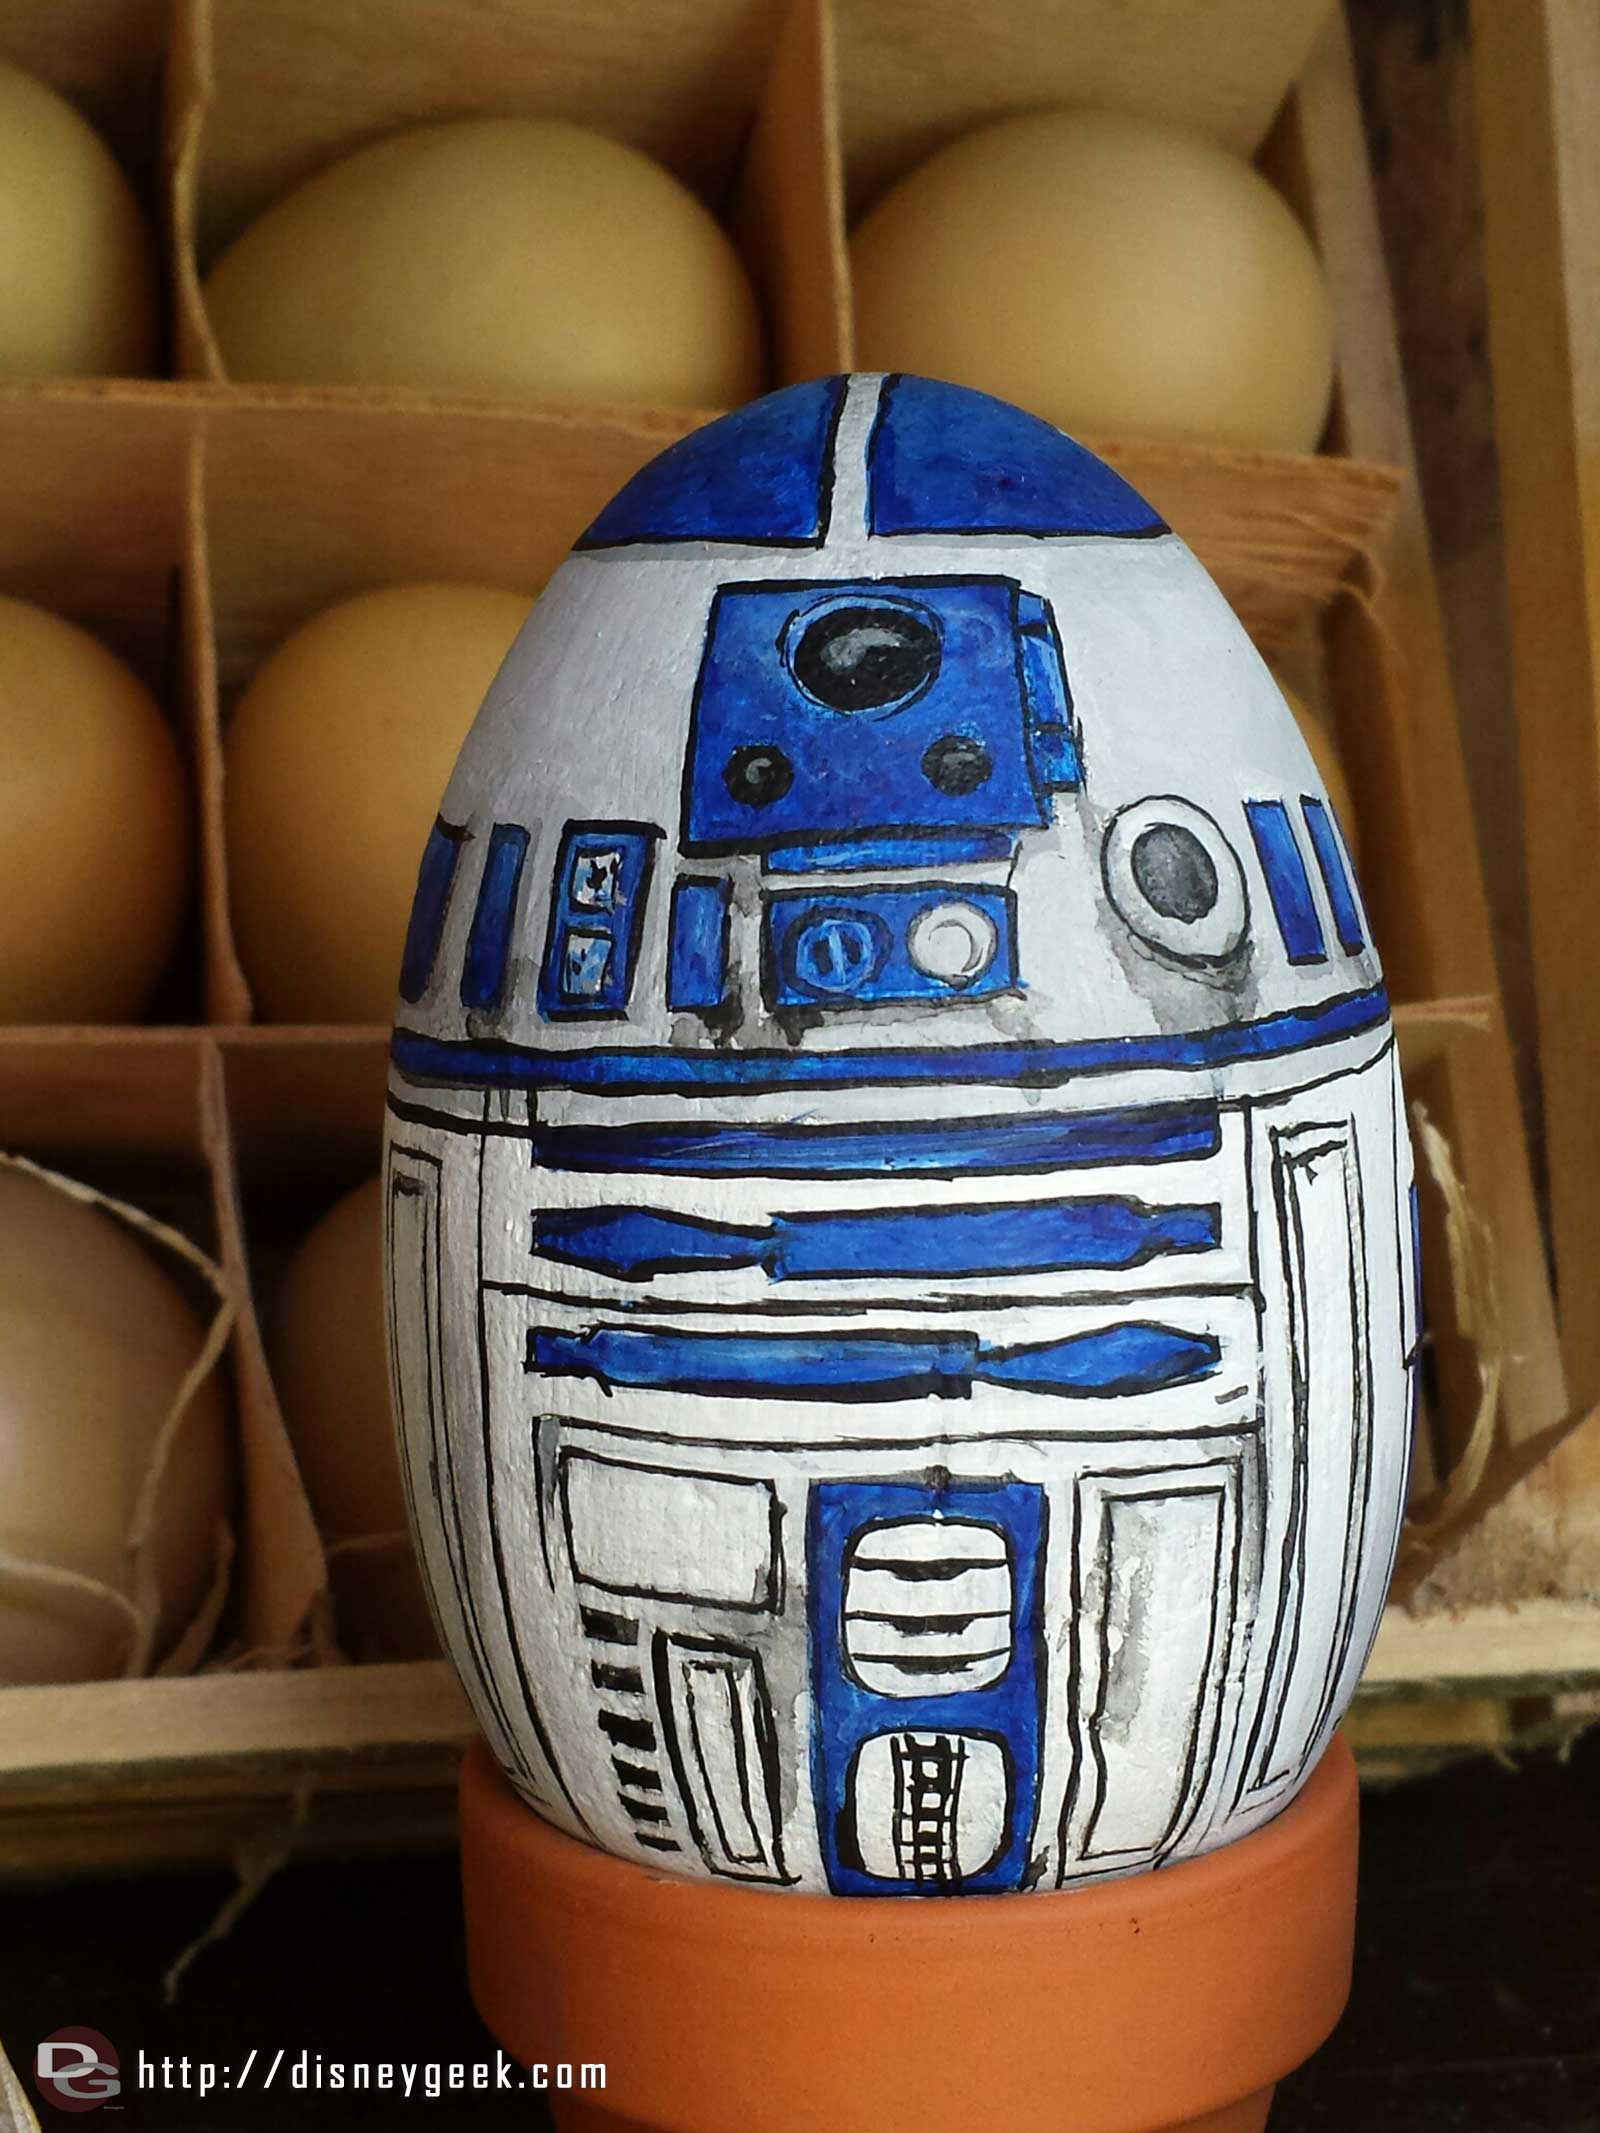 R2D2 egg at the Springtime Roundup #Disneyland #Starwars